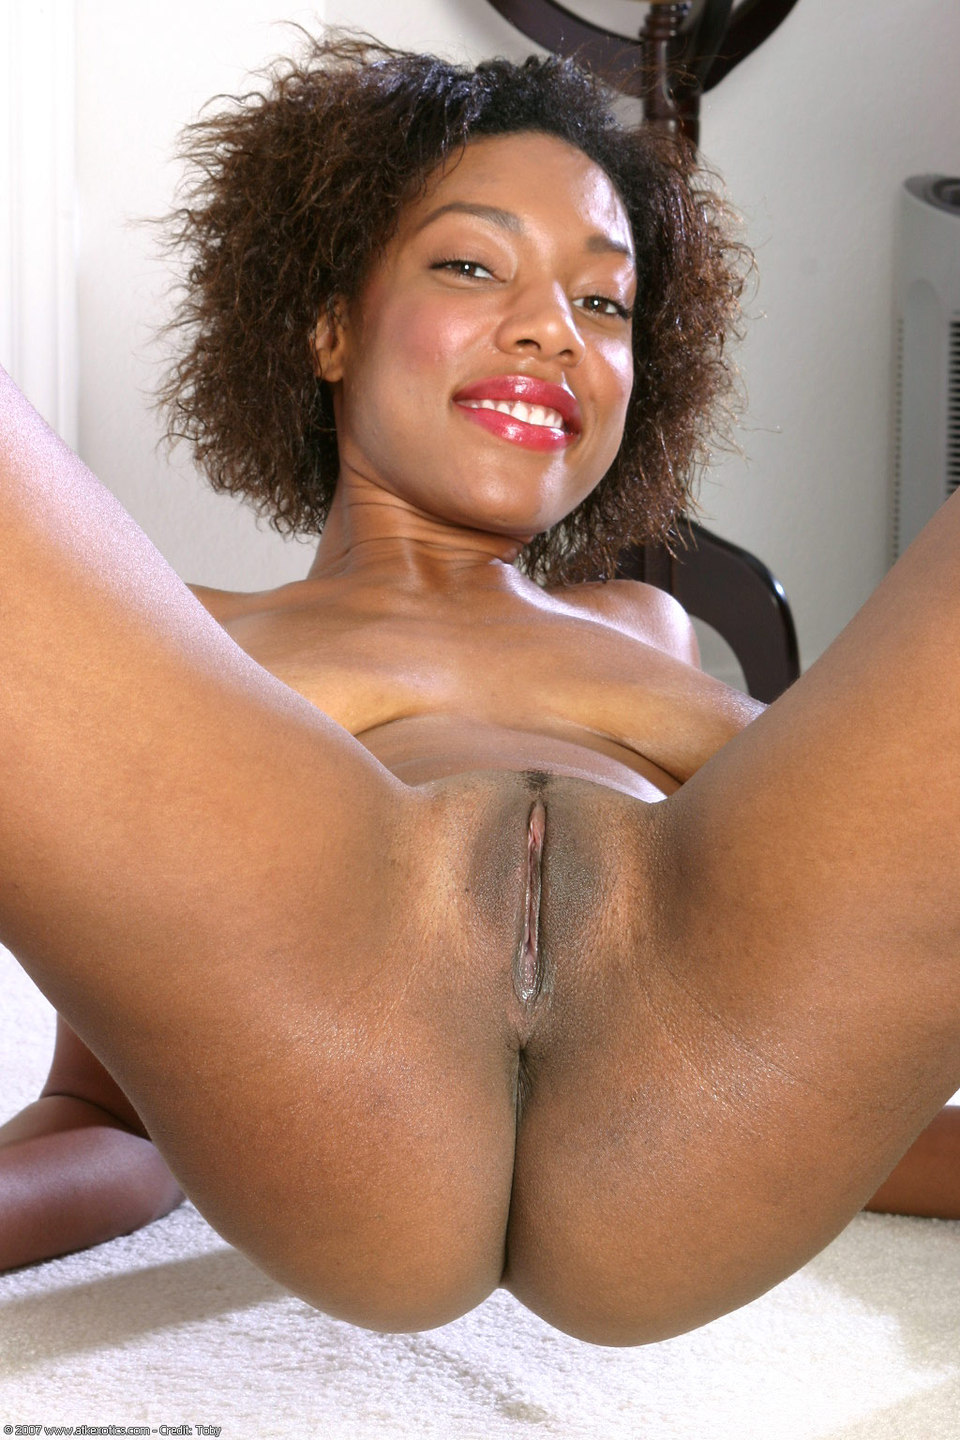 Your place black hairy pussy milf fantasy)))) mine